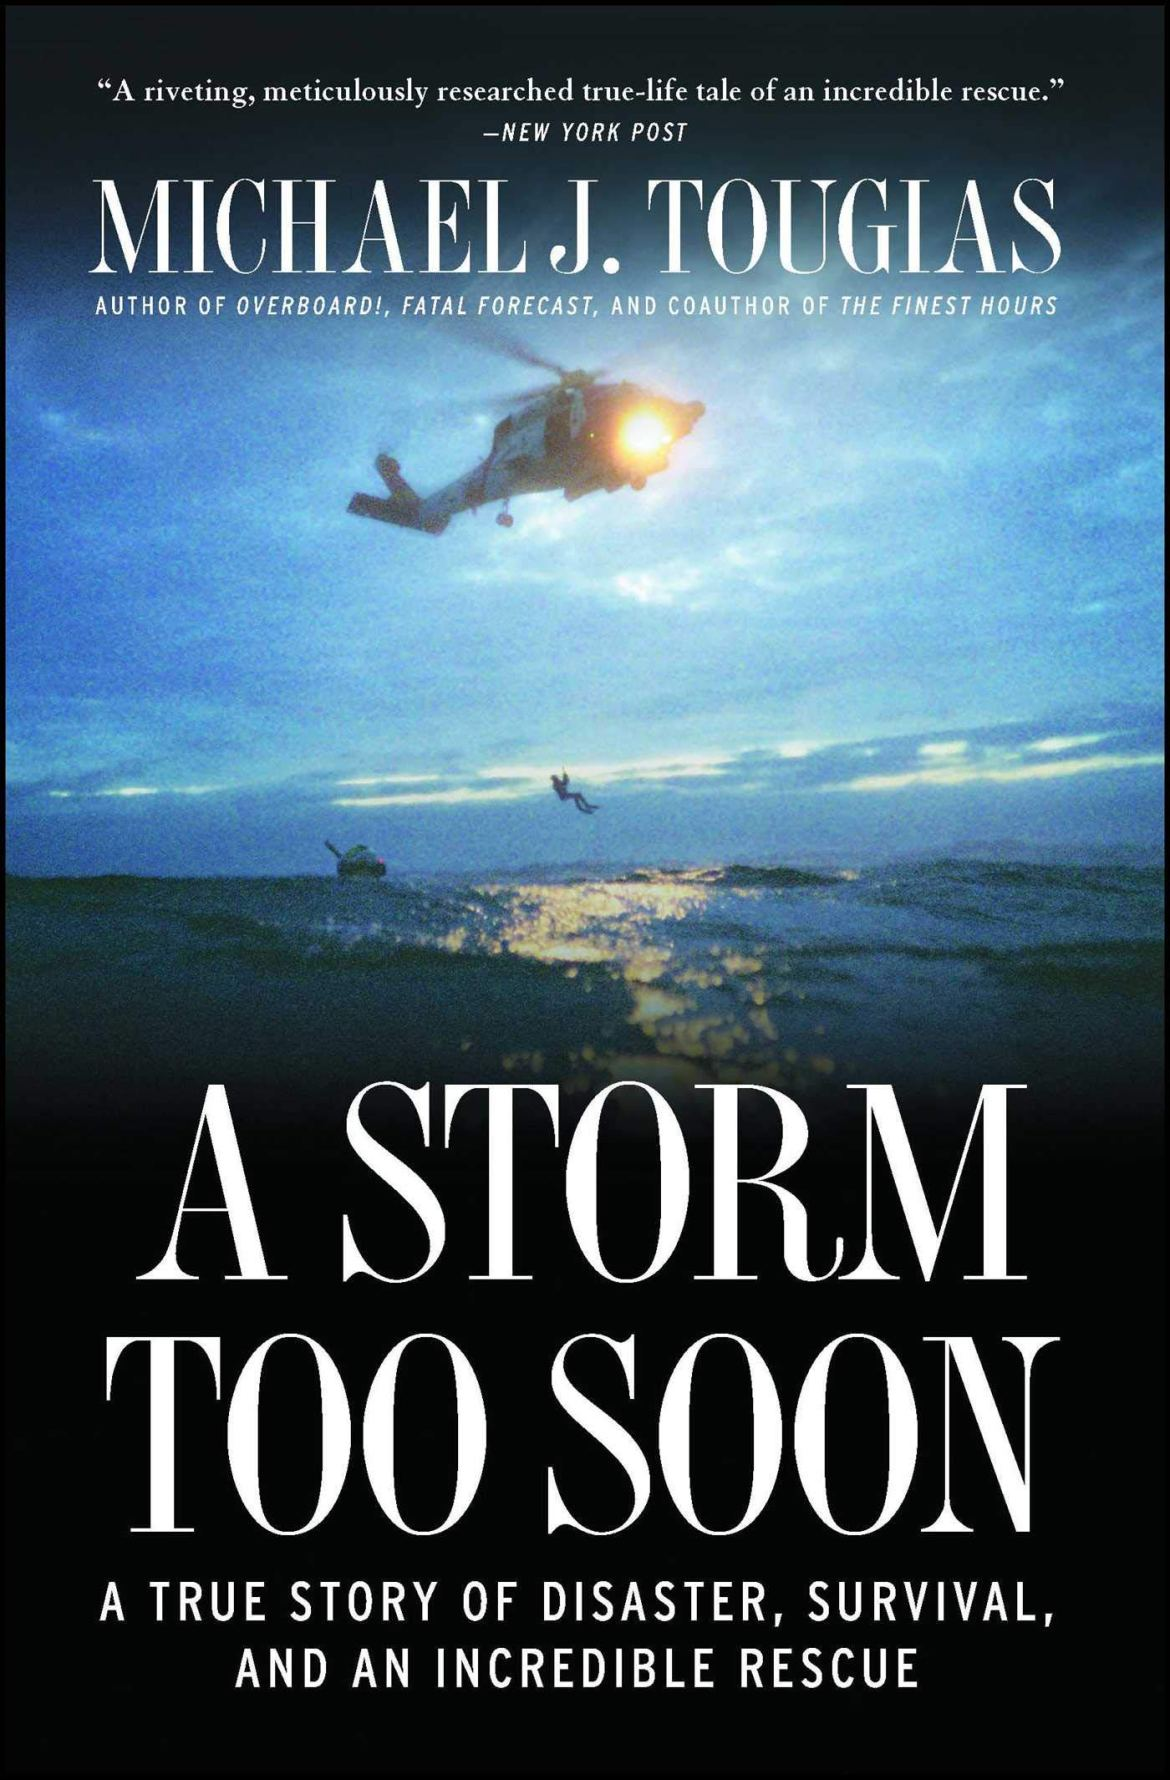 A Storm Too Soon: A True Story of Disaster, Survival and an Incredible  Rescue: Tougias, Michael J.: 9781451683349: Amazon.com: Books